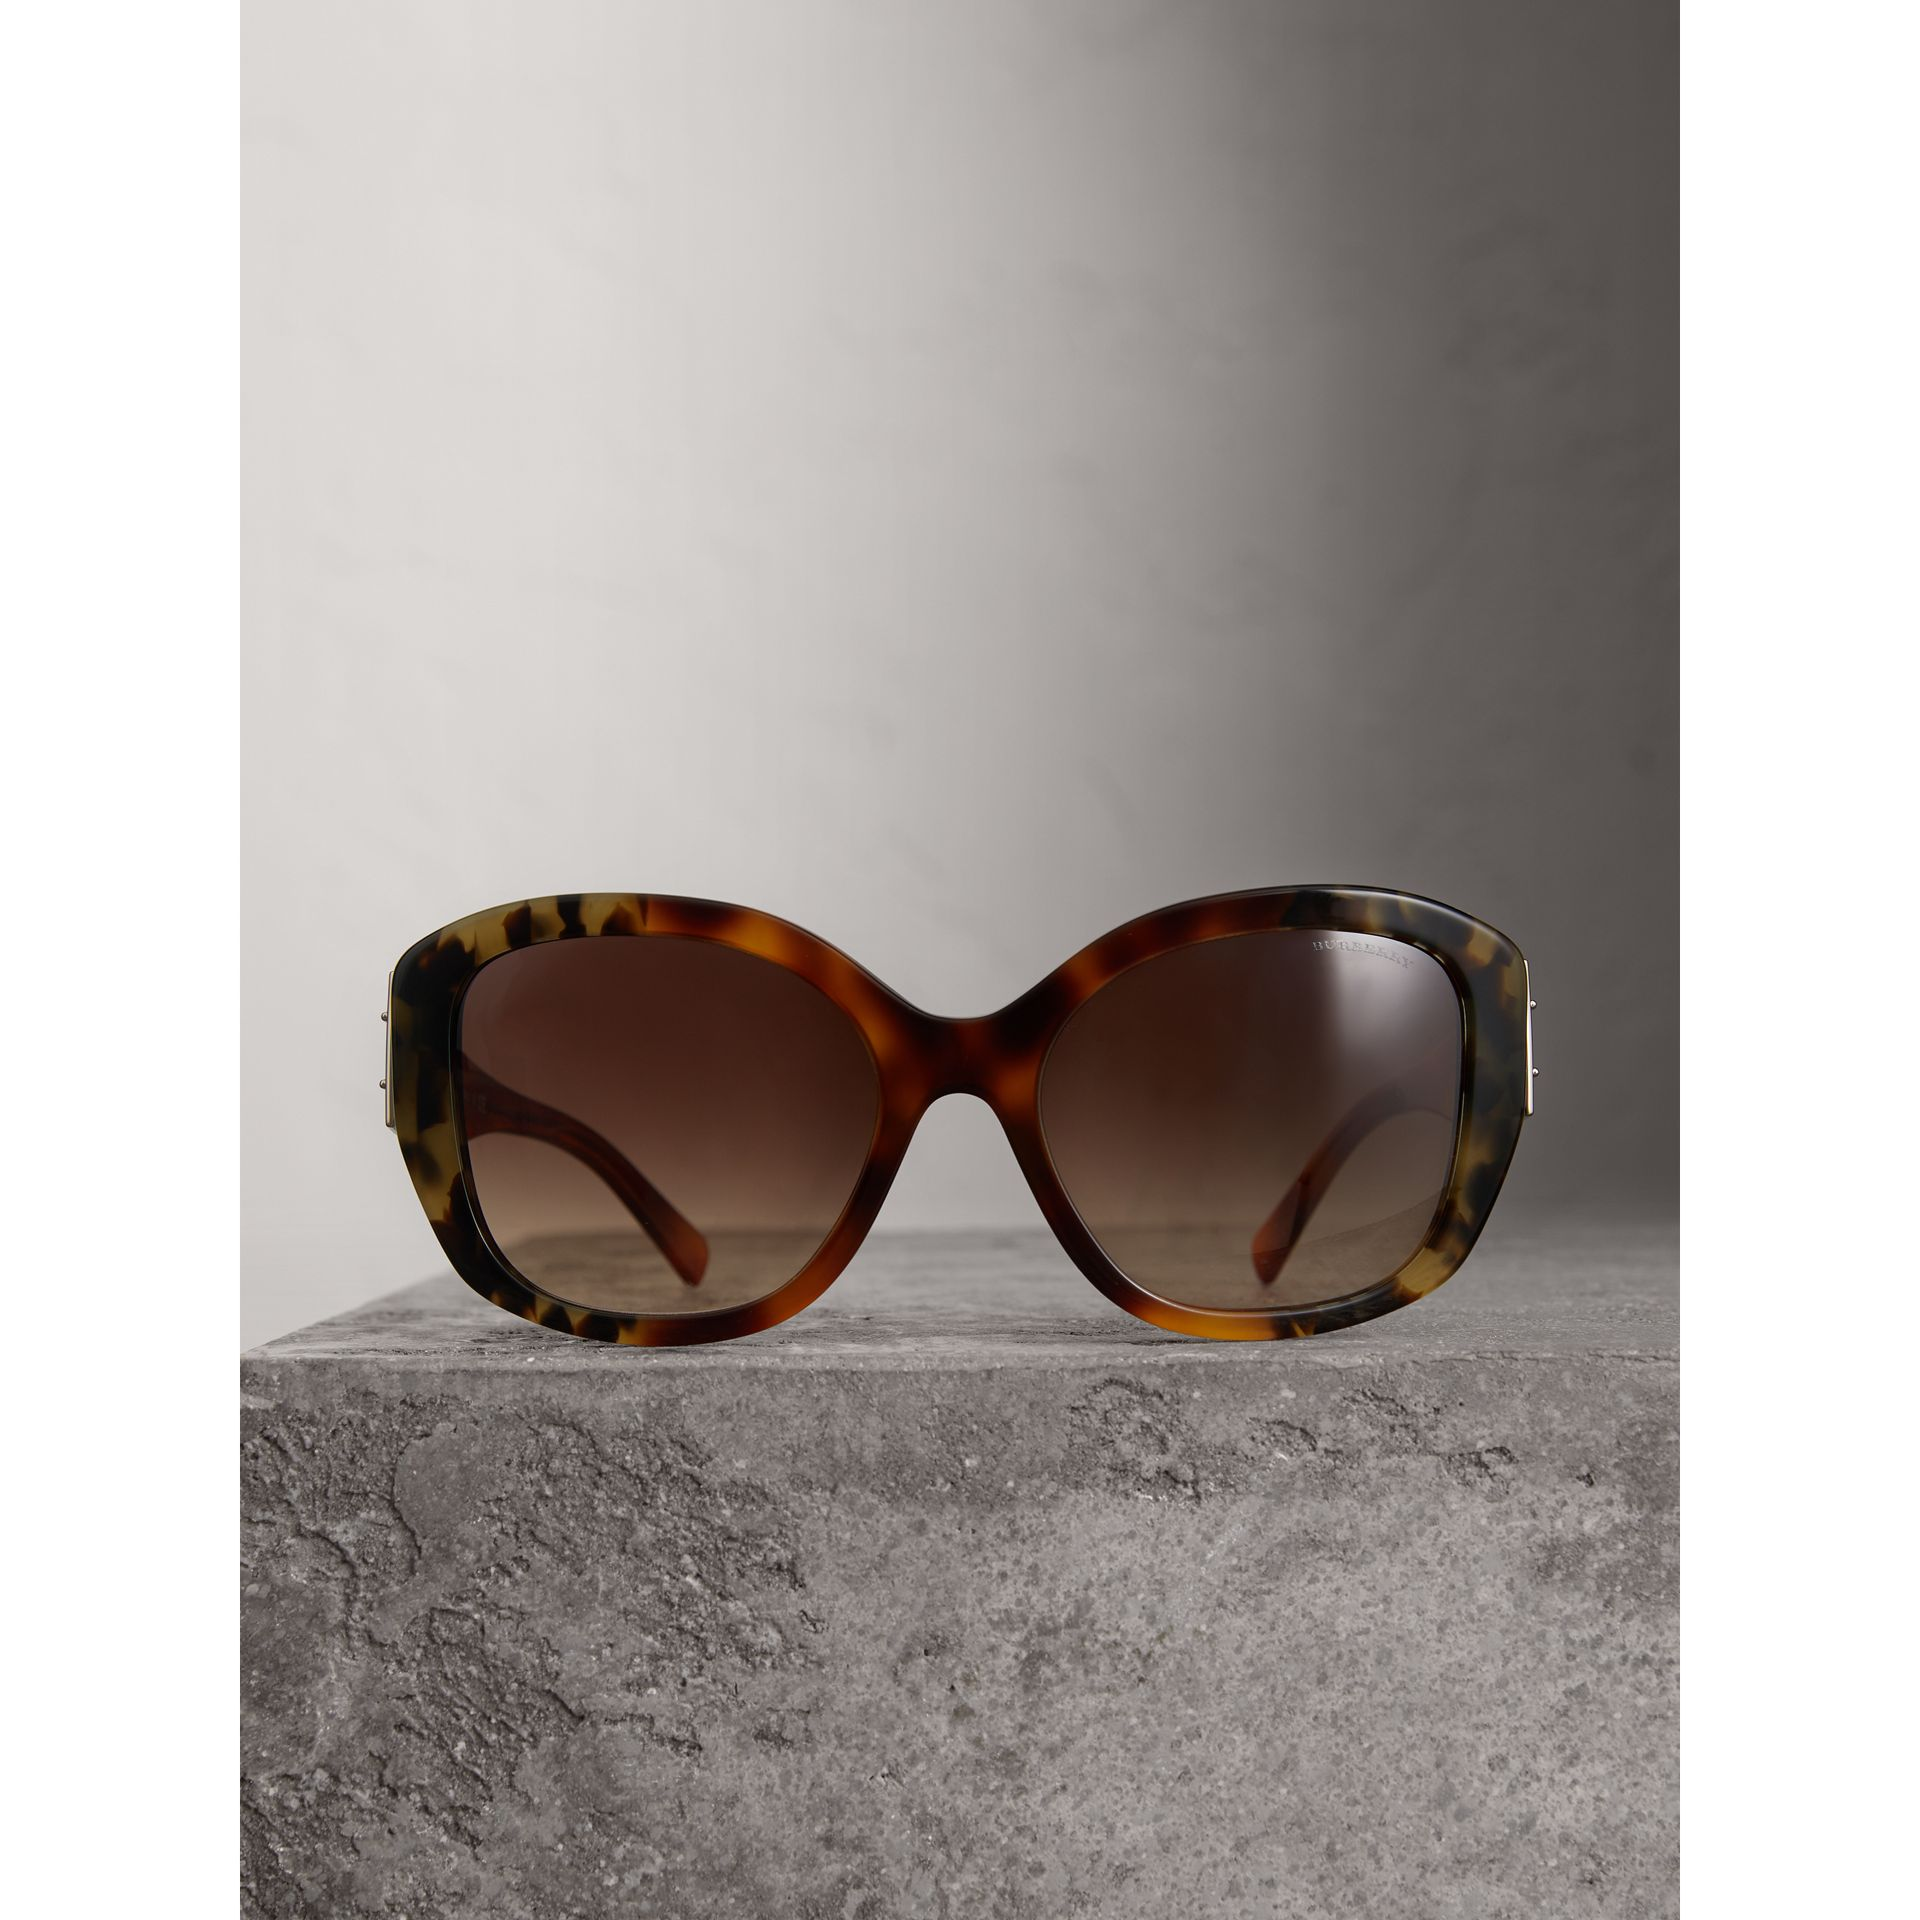 Buckle Detail Oversize Square Frame Sunglasses in Dark Ochre - Women | Burberry United Kingdom - gallery image 3